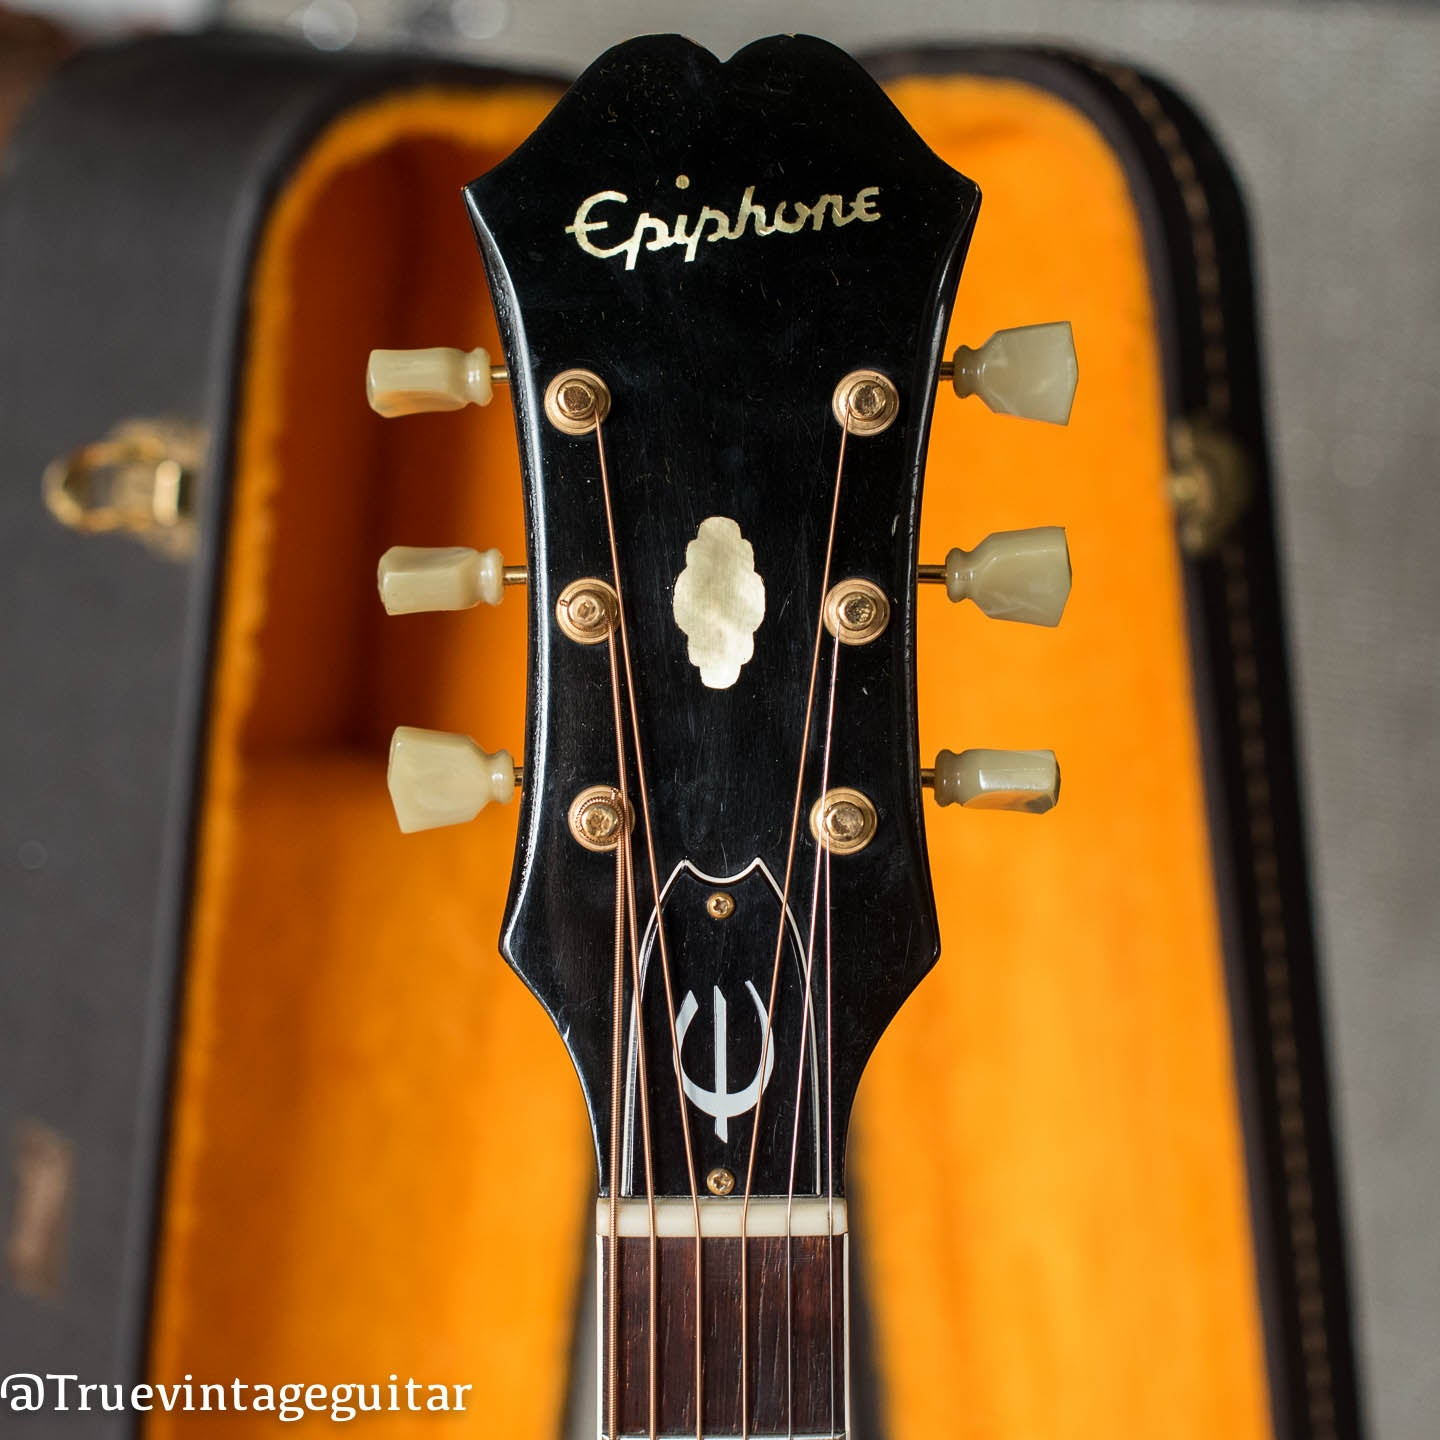 Headstock, Vintage 1965 Epiphone FT-110 Frontier acoustic guitar